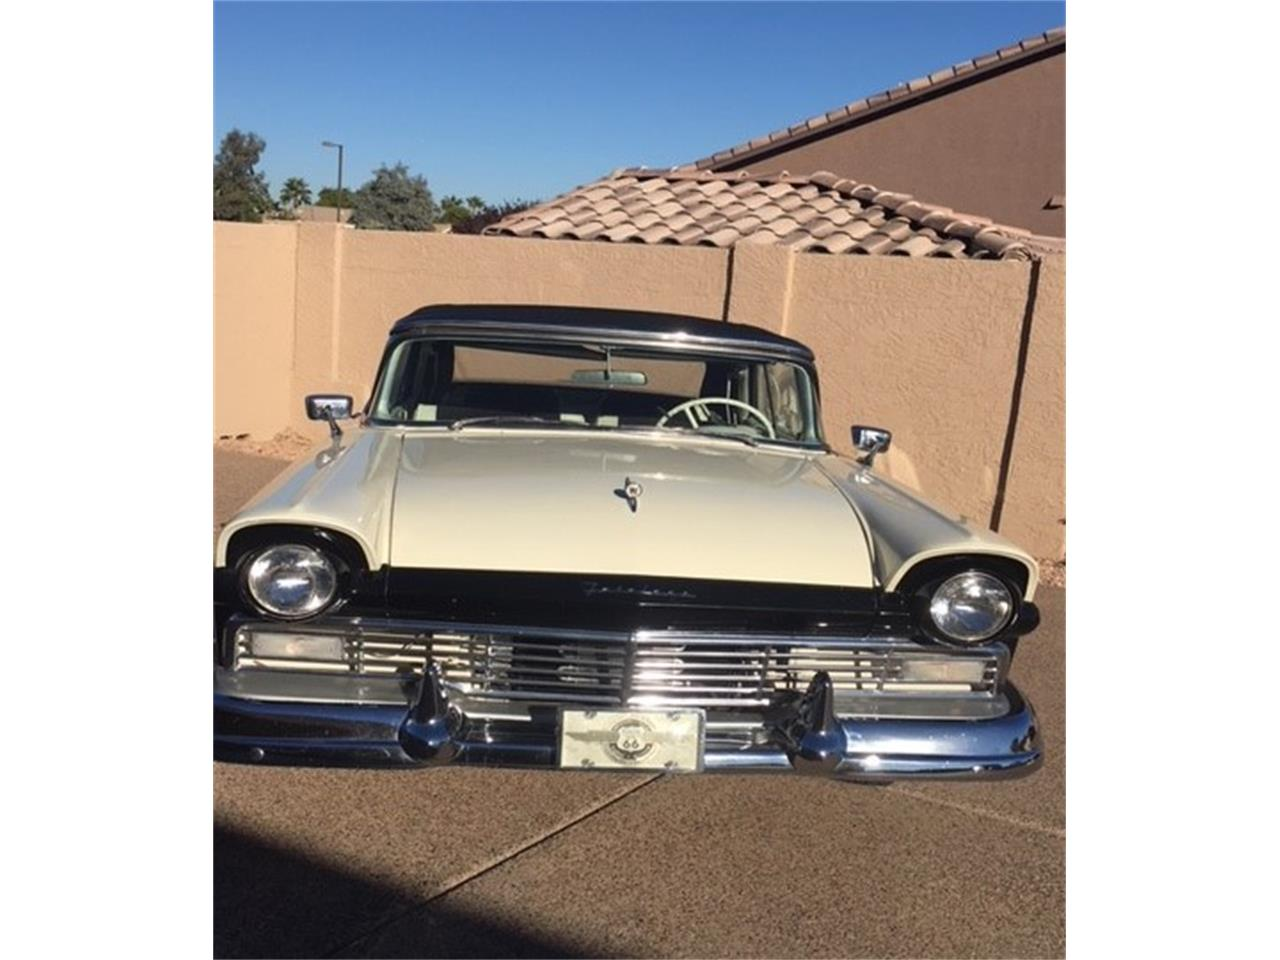 Large Picture of 1957 Ford Fairlane 500 Auction Vehicle Offered by Russo and Steele - MO8W